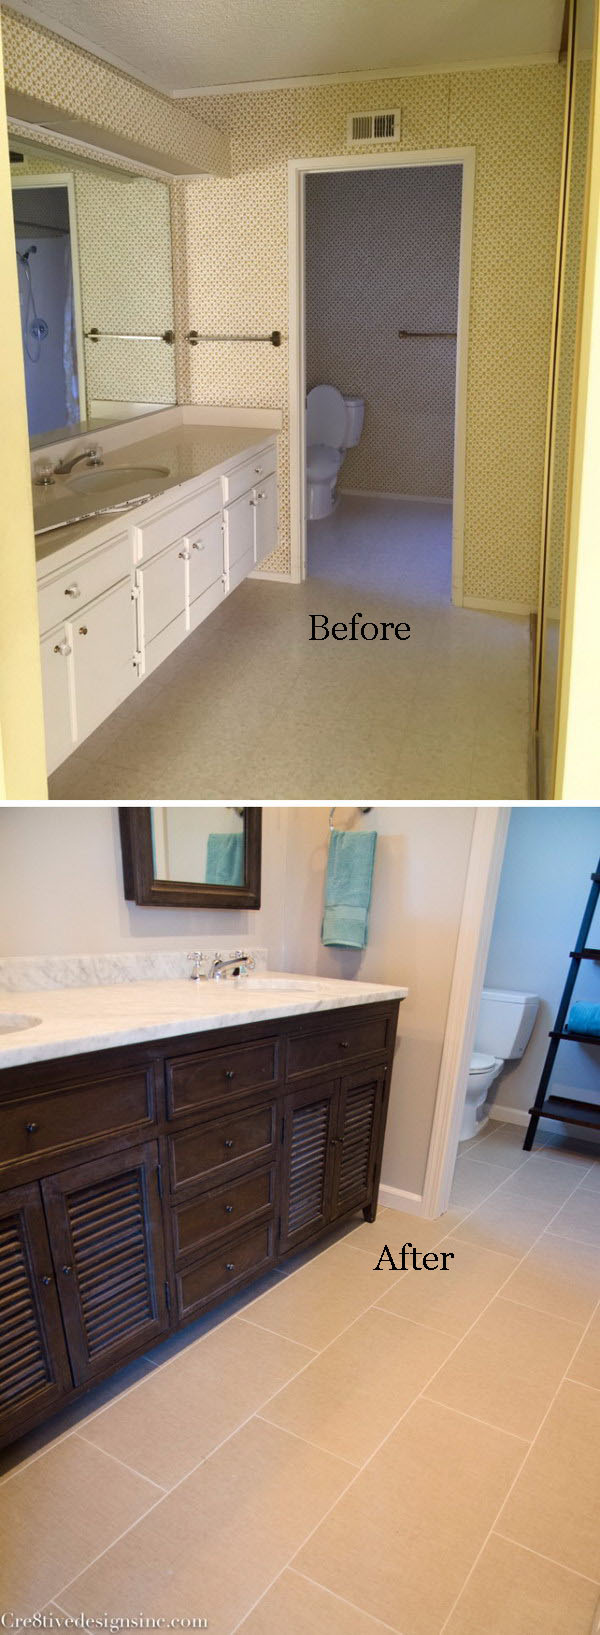 From Single Sink to Double Sink Small Bathroom Remodel Before After